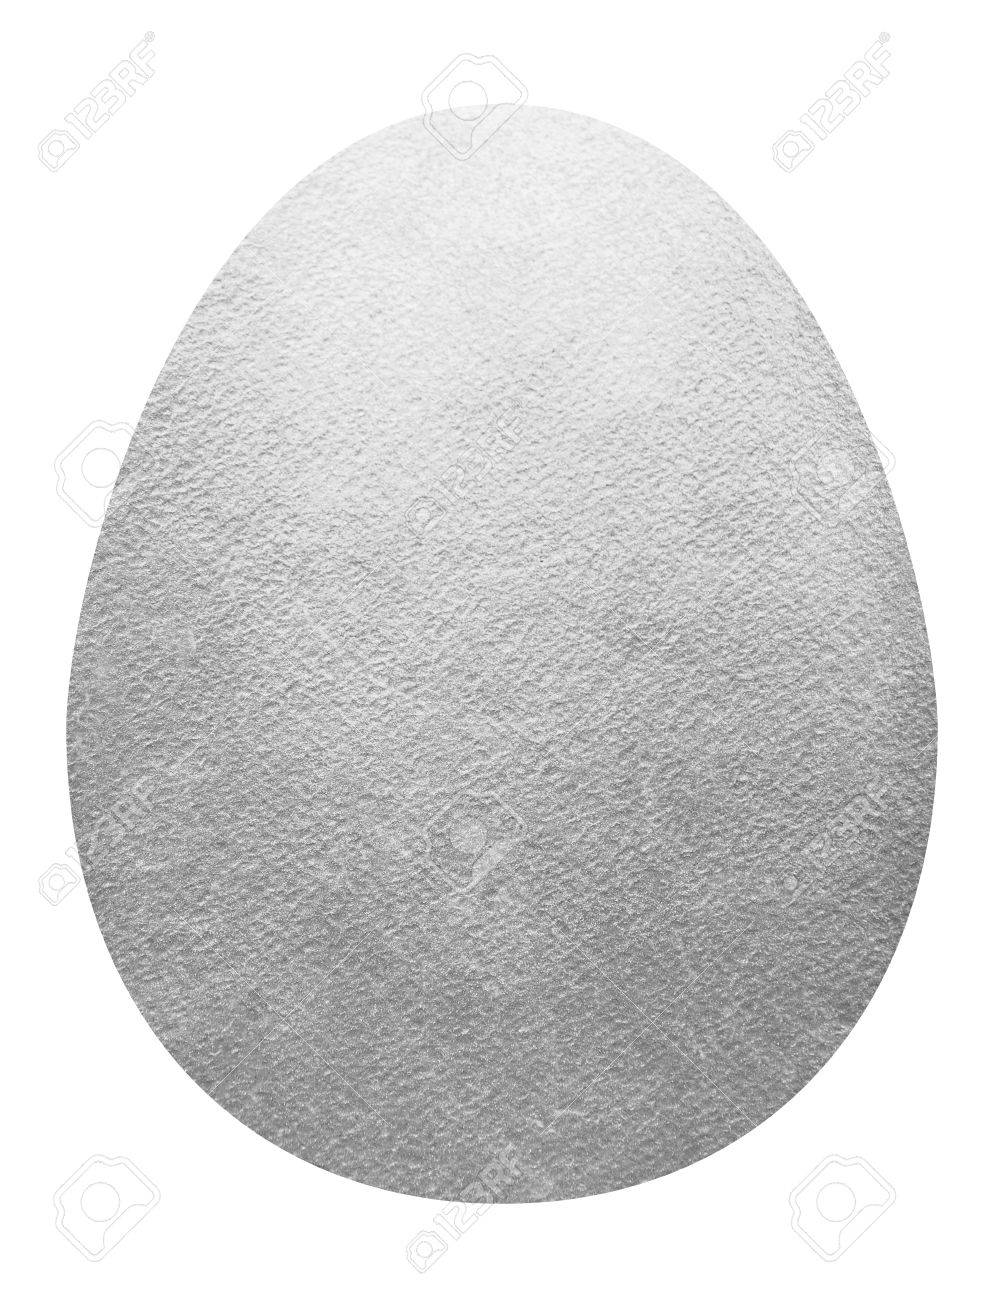 Big Silver Egg Shape Isolated On White Easter Template Or